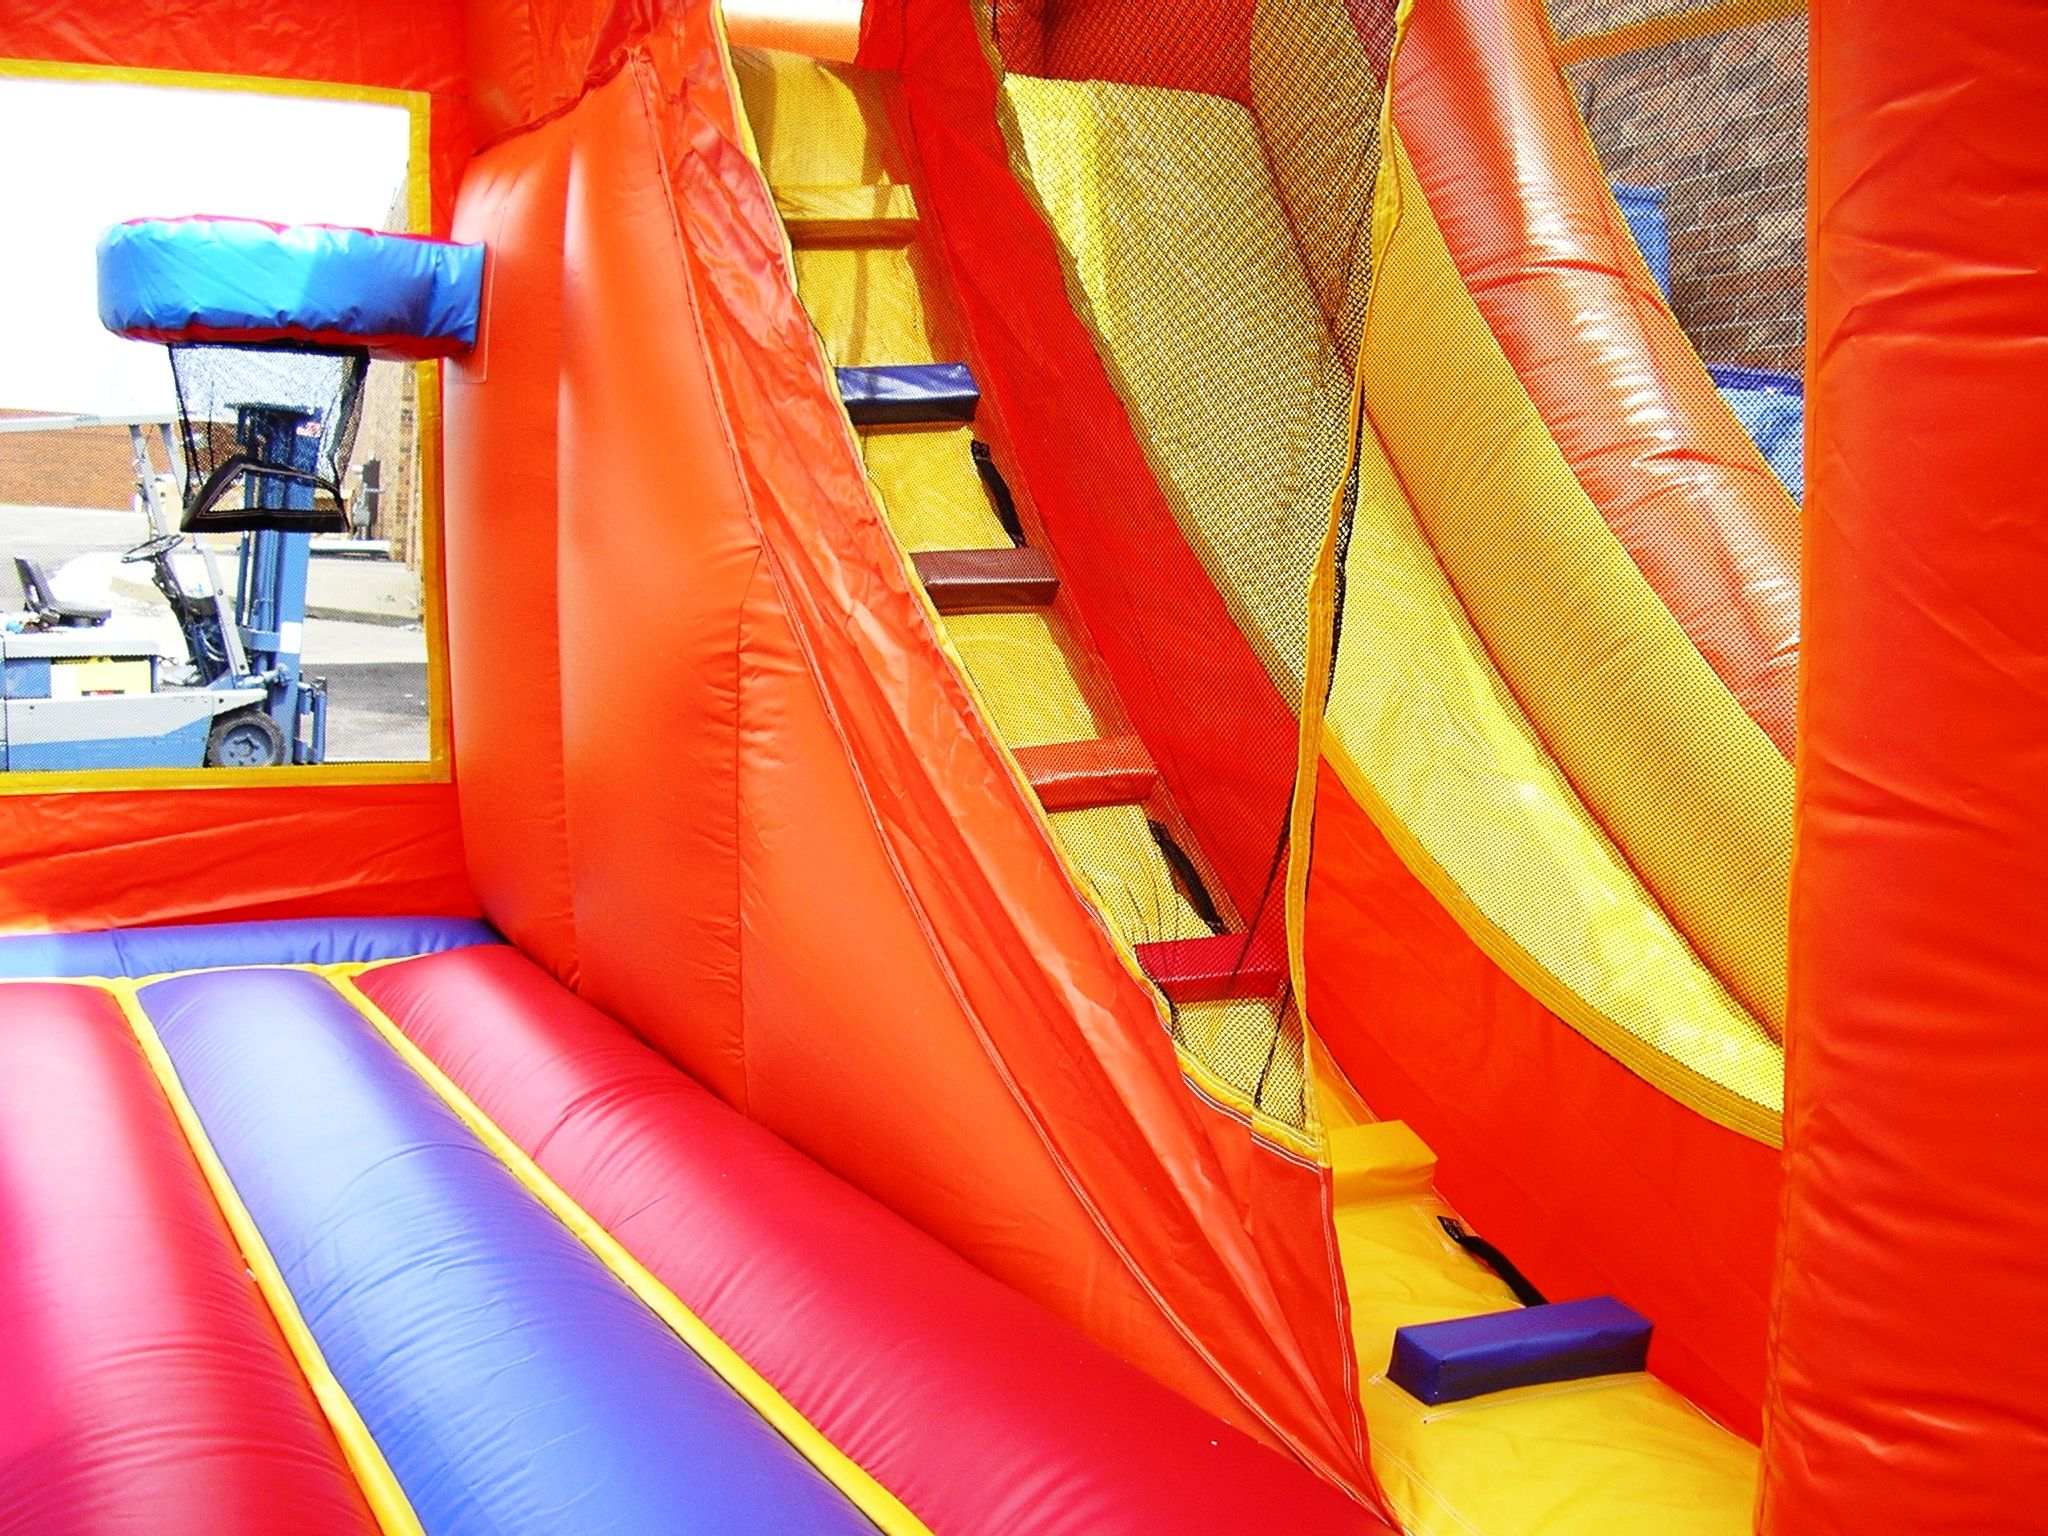 Pin On Inflatables Moonwalks Bounce Houses And More